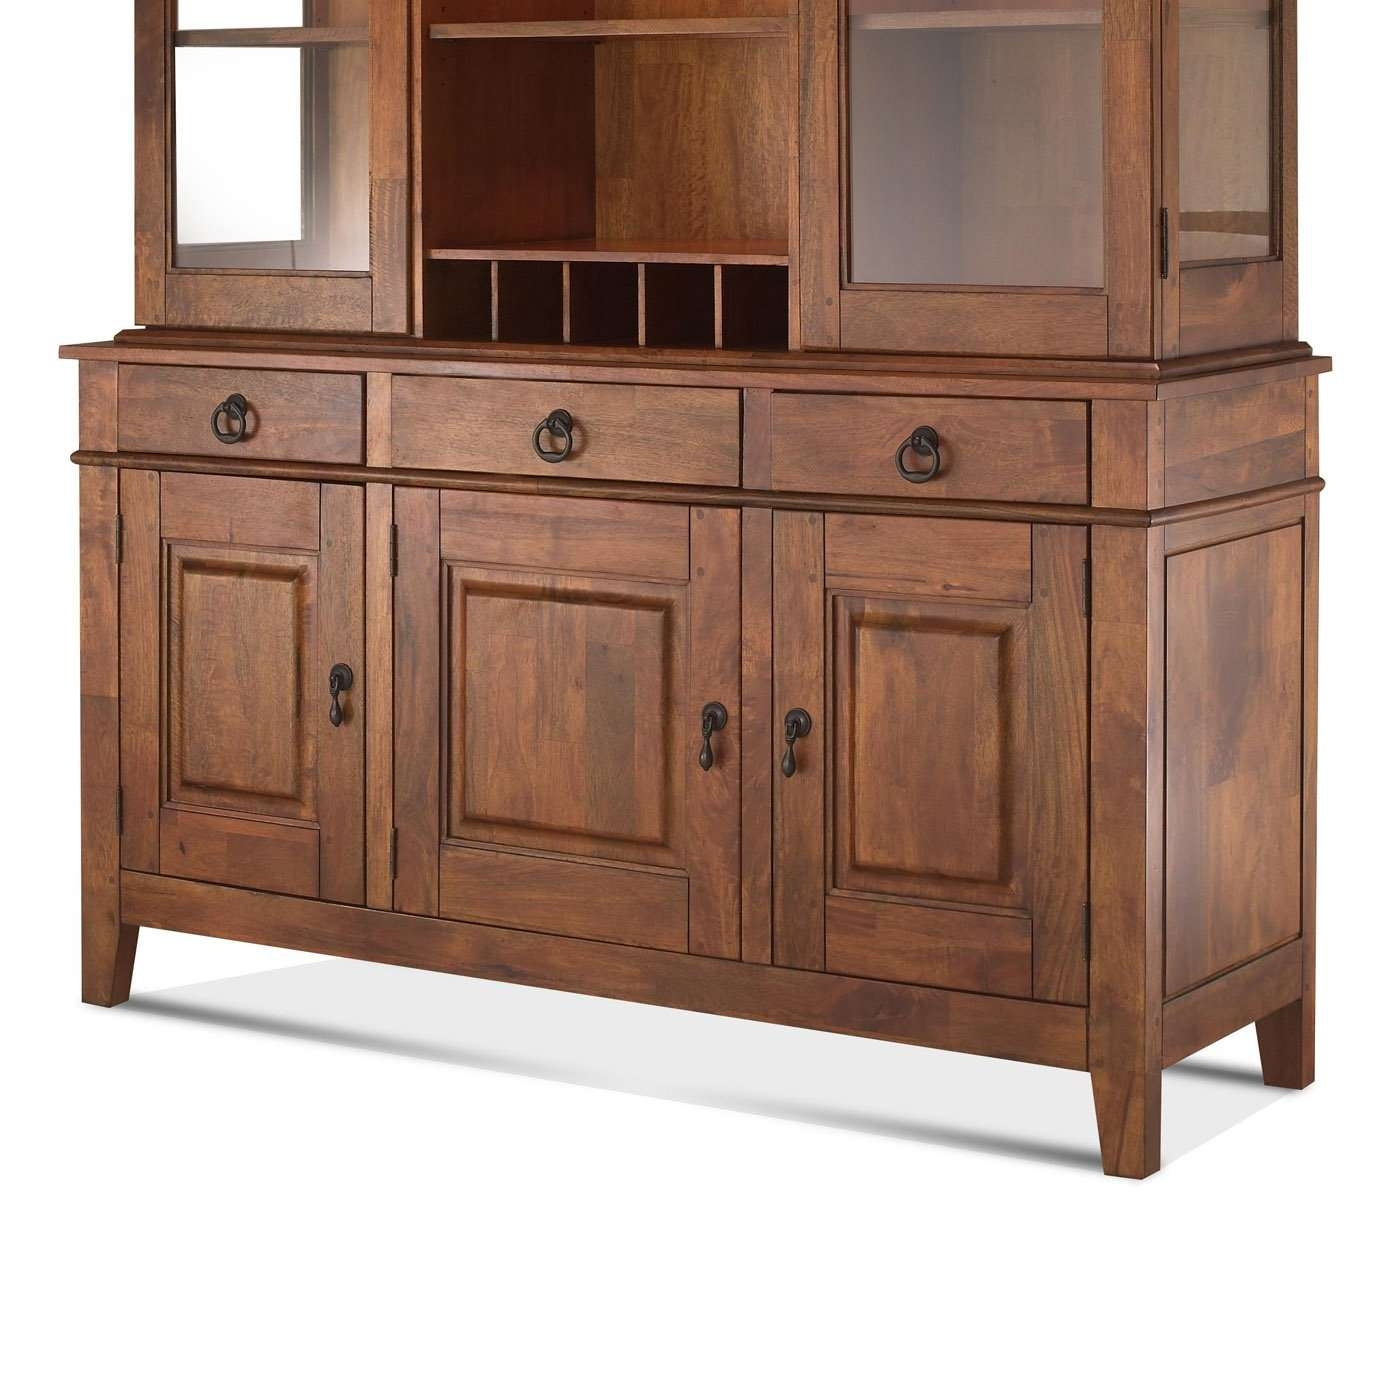 Furniture Buffets And Sideboards Mirrored Buffet Cabinet Inside Small View 5